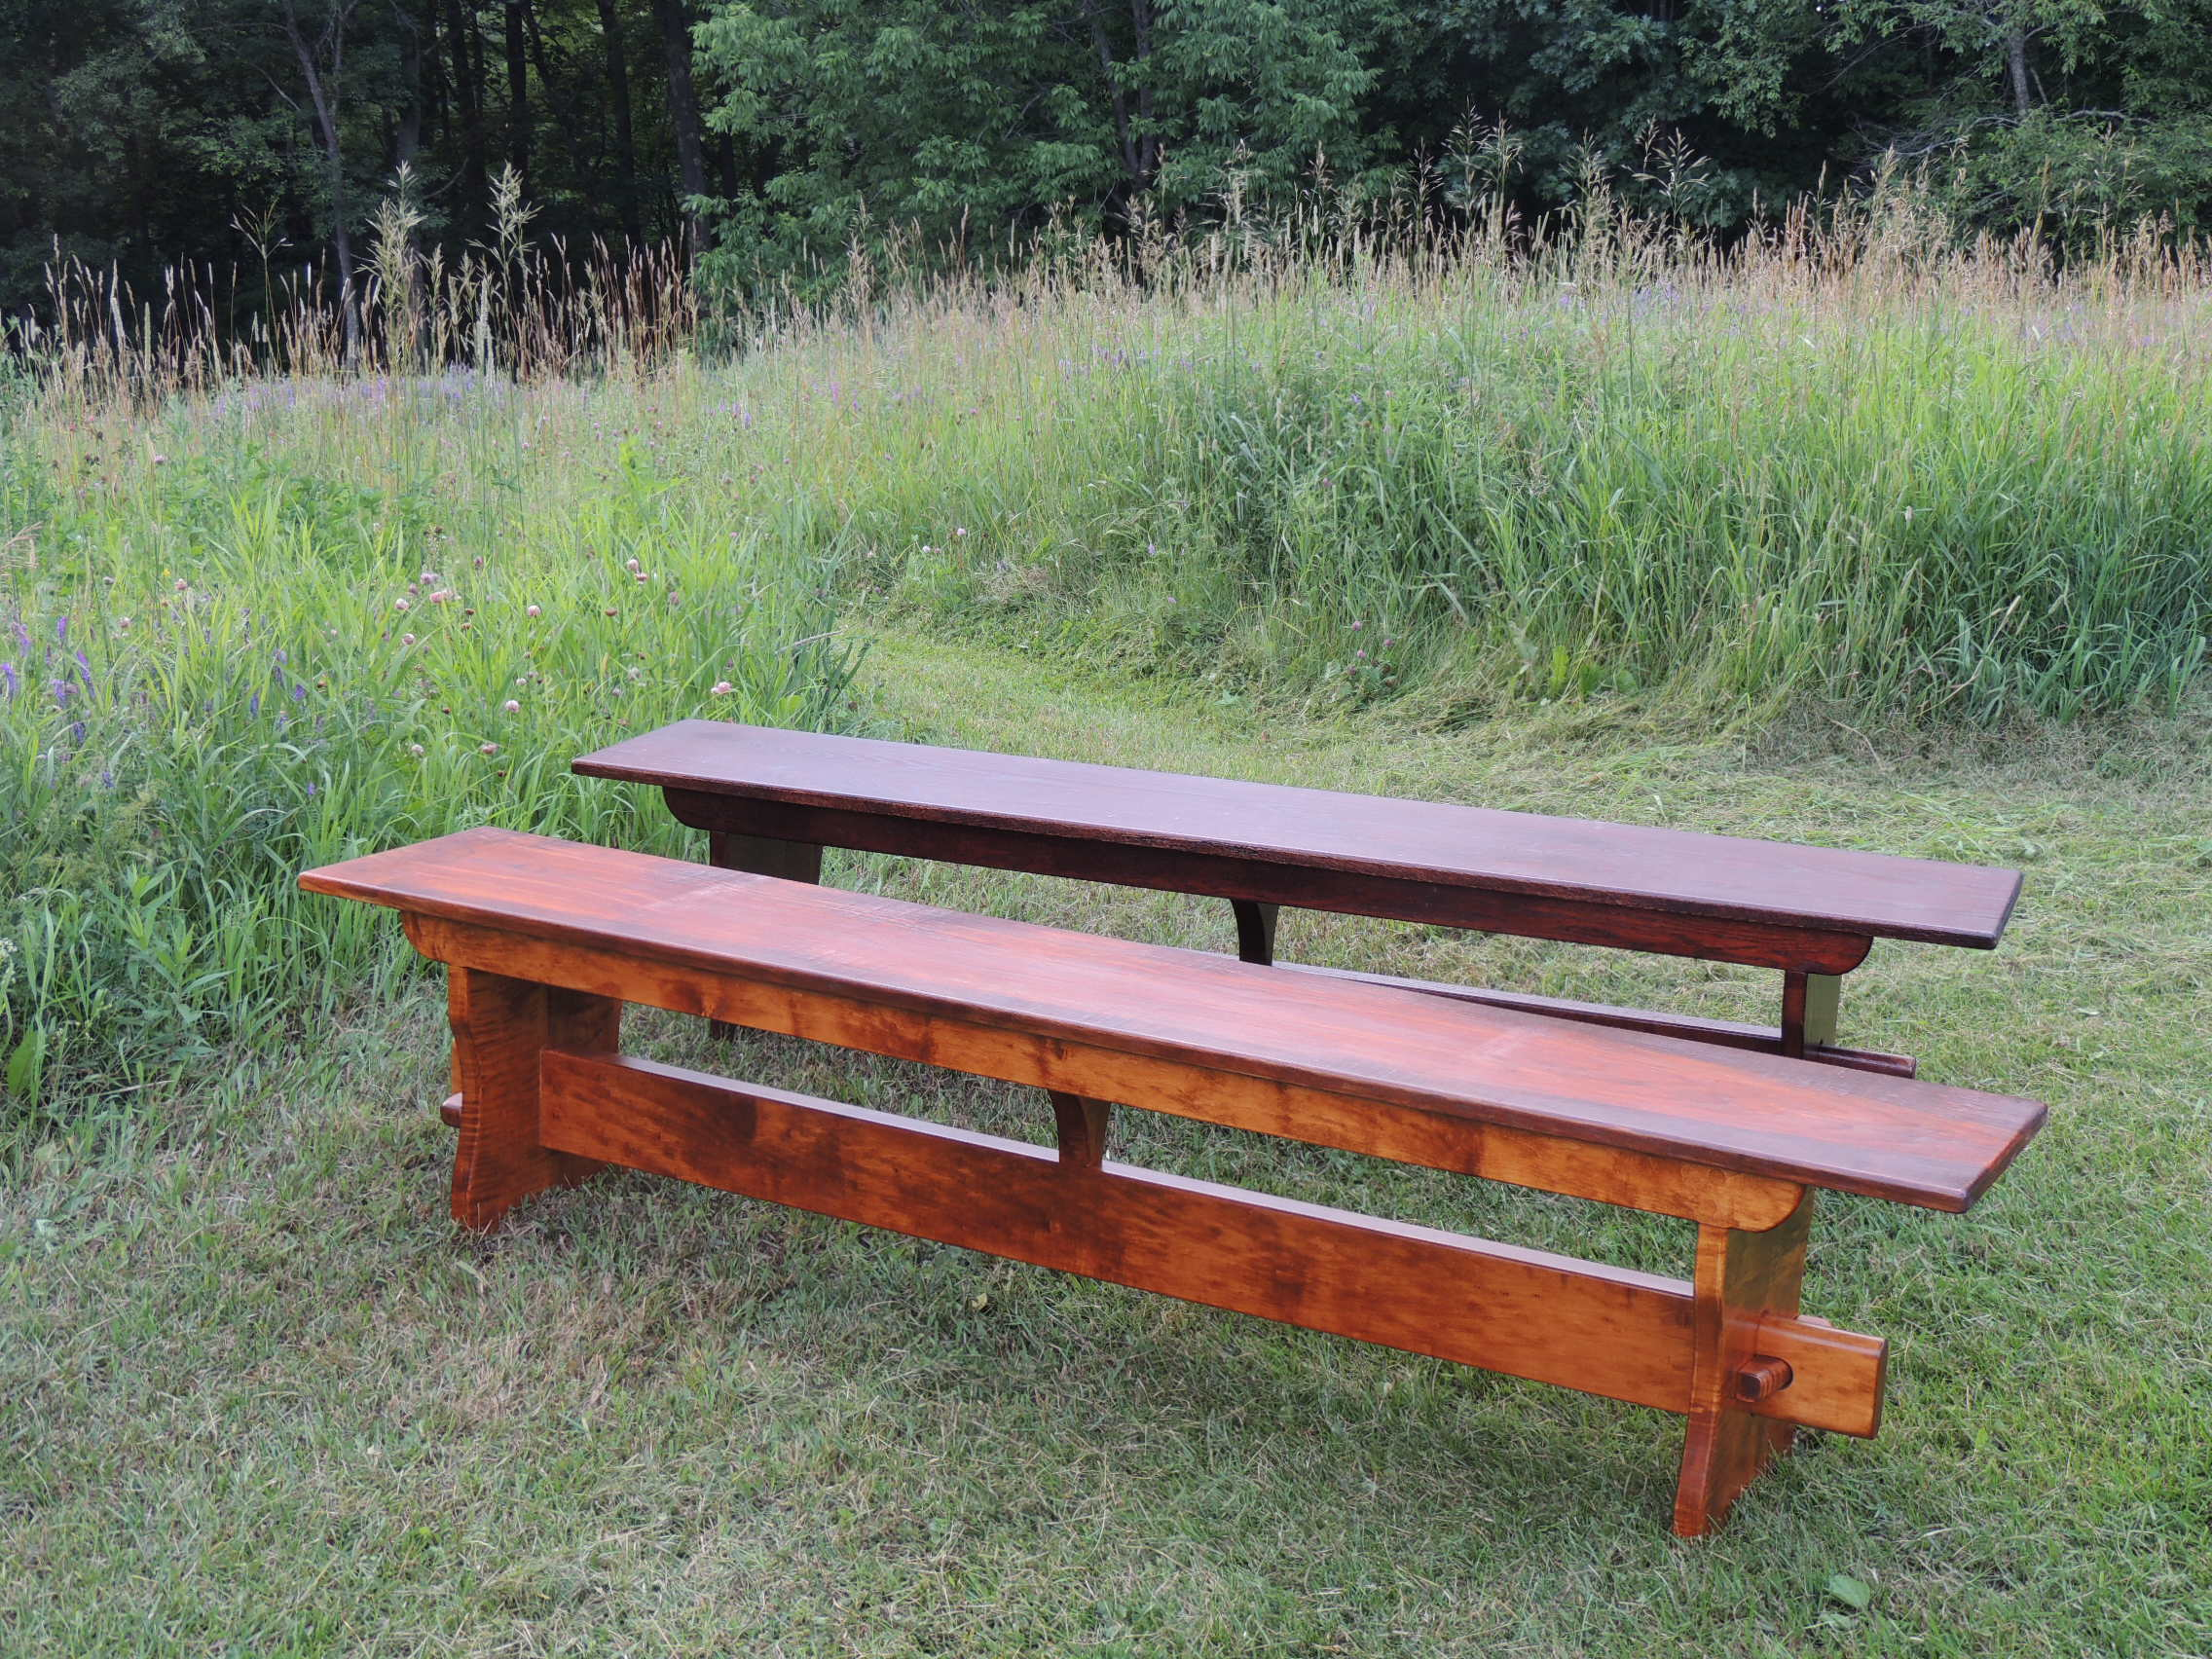 Trestle style benches